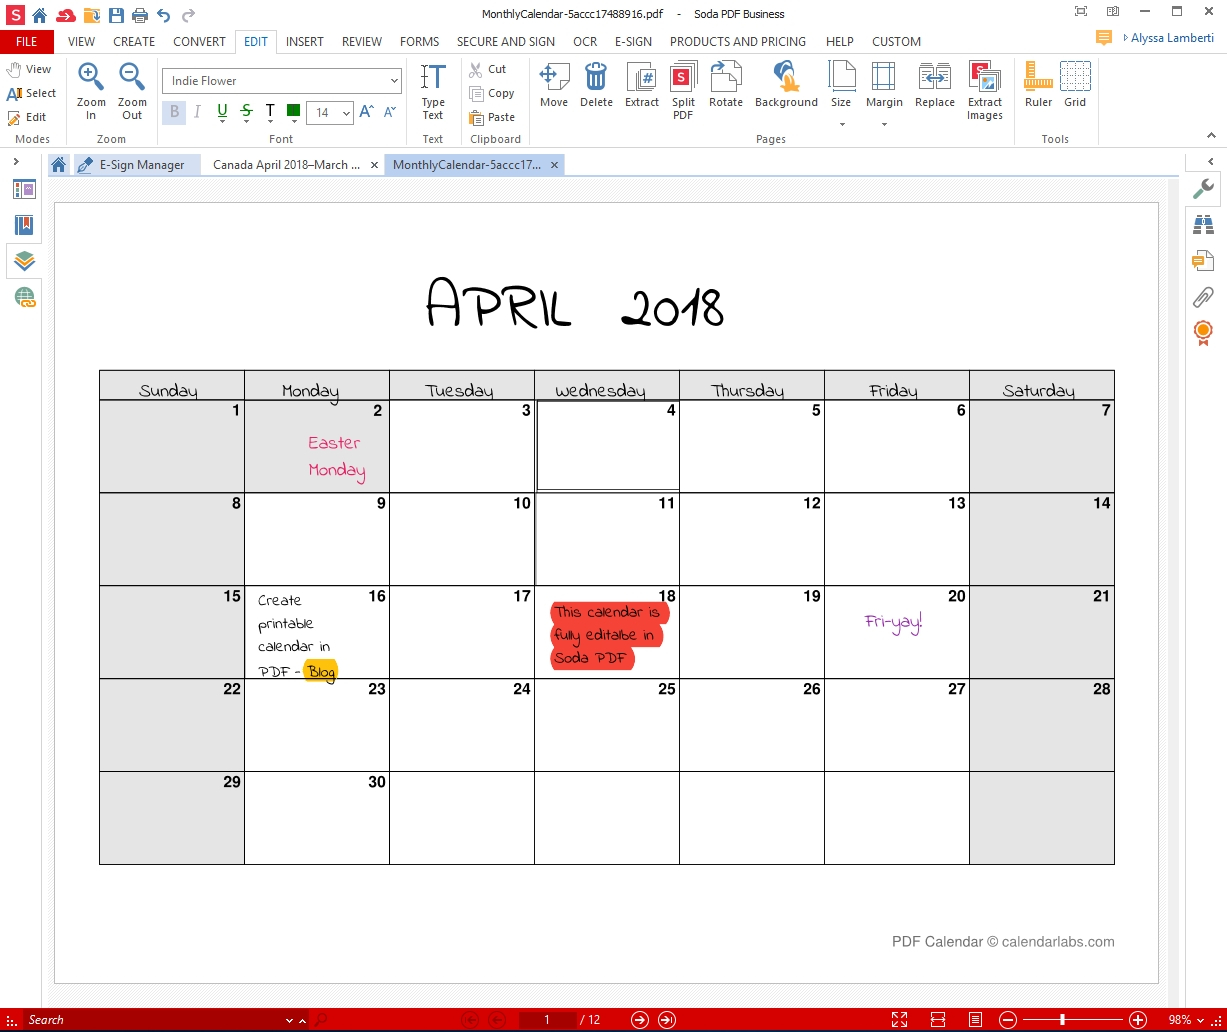 Monthly Calendar I Can Edit • Printable Blank Calendar Template